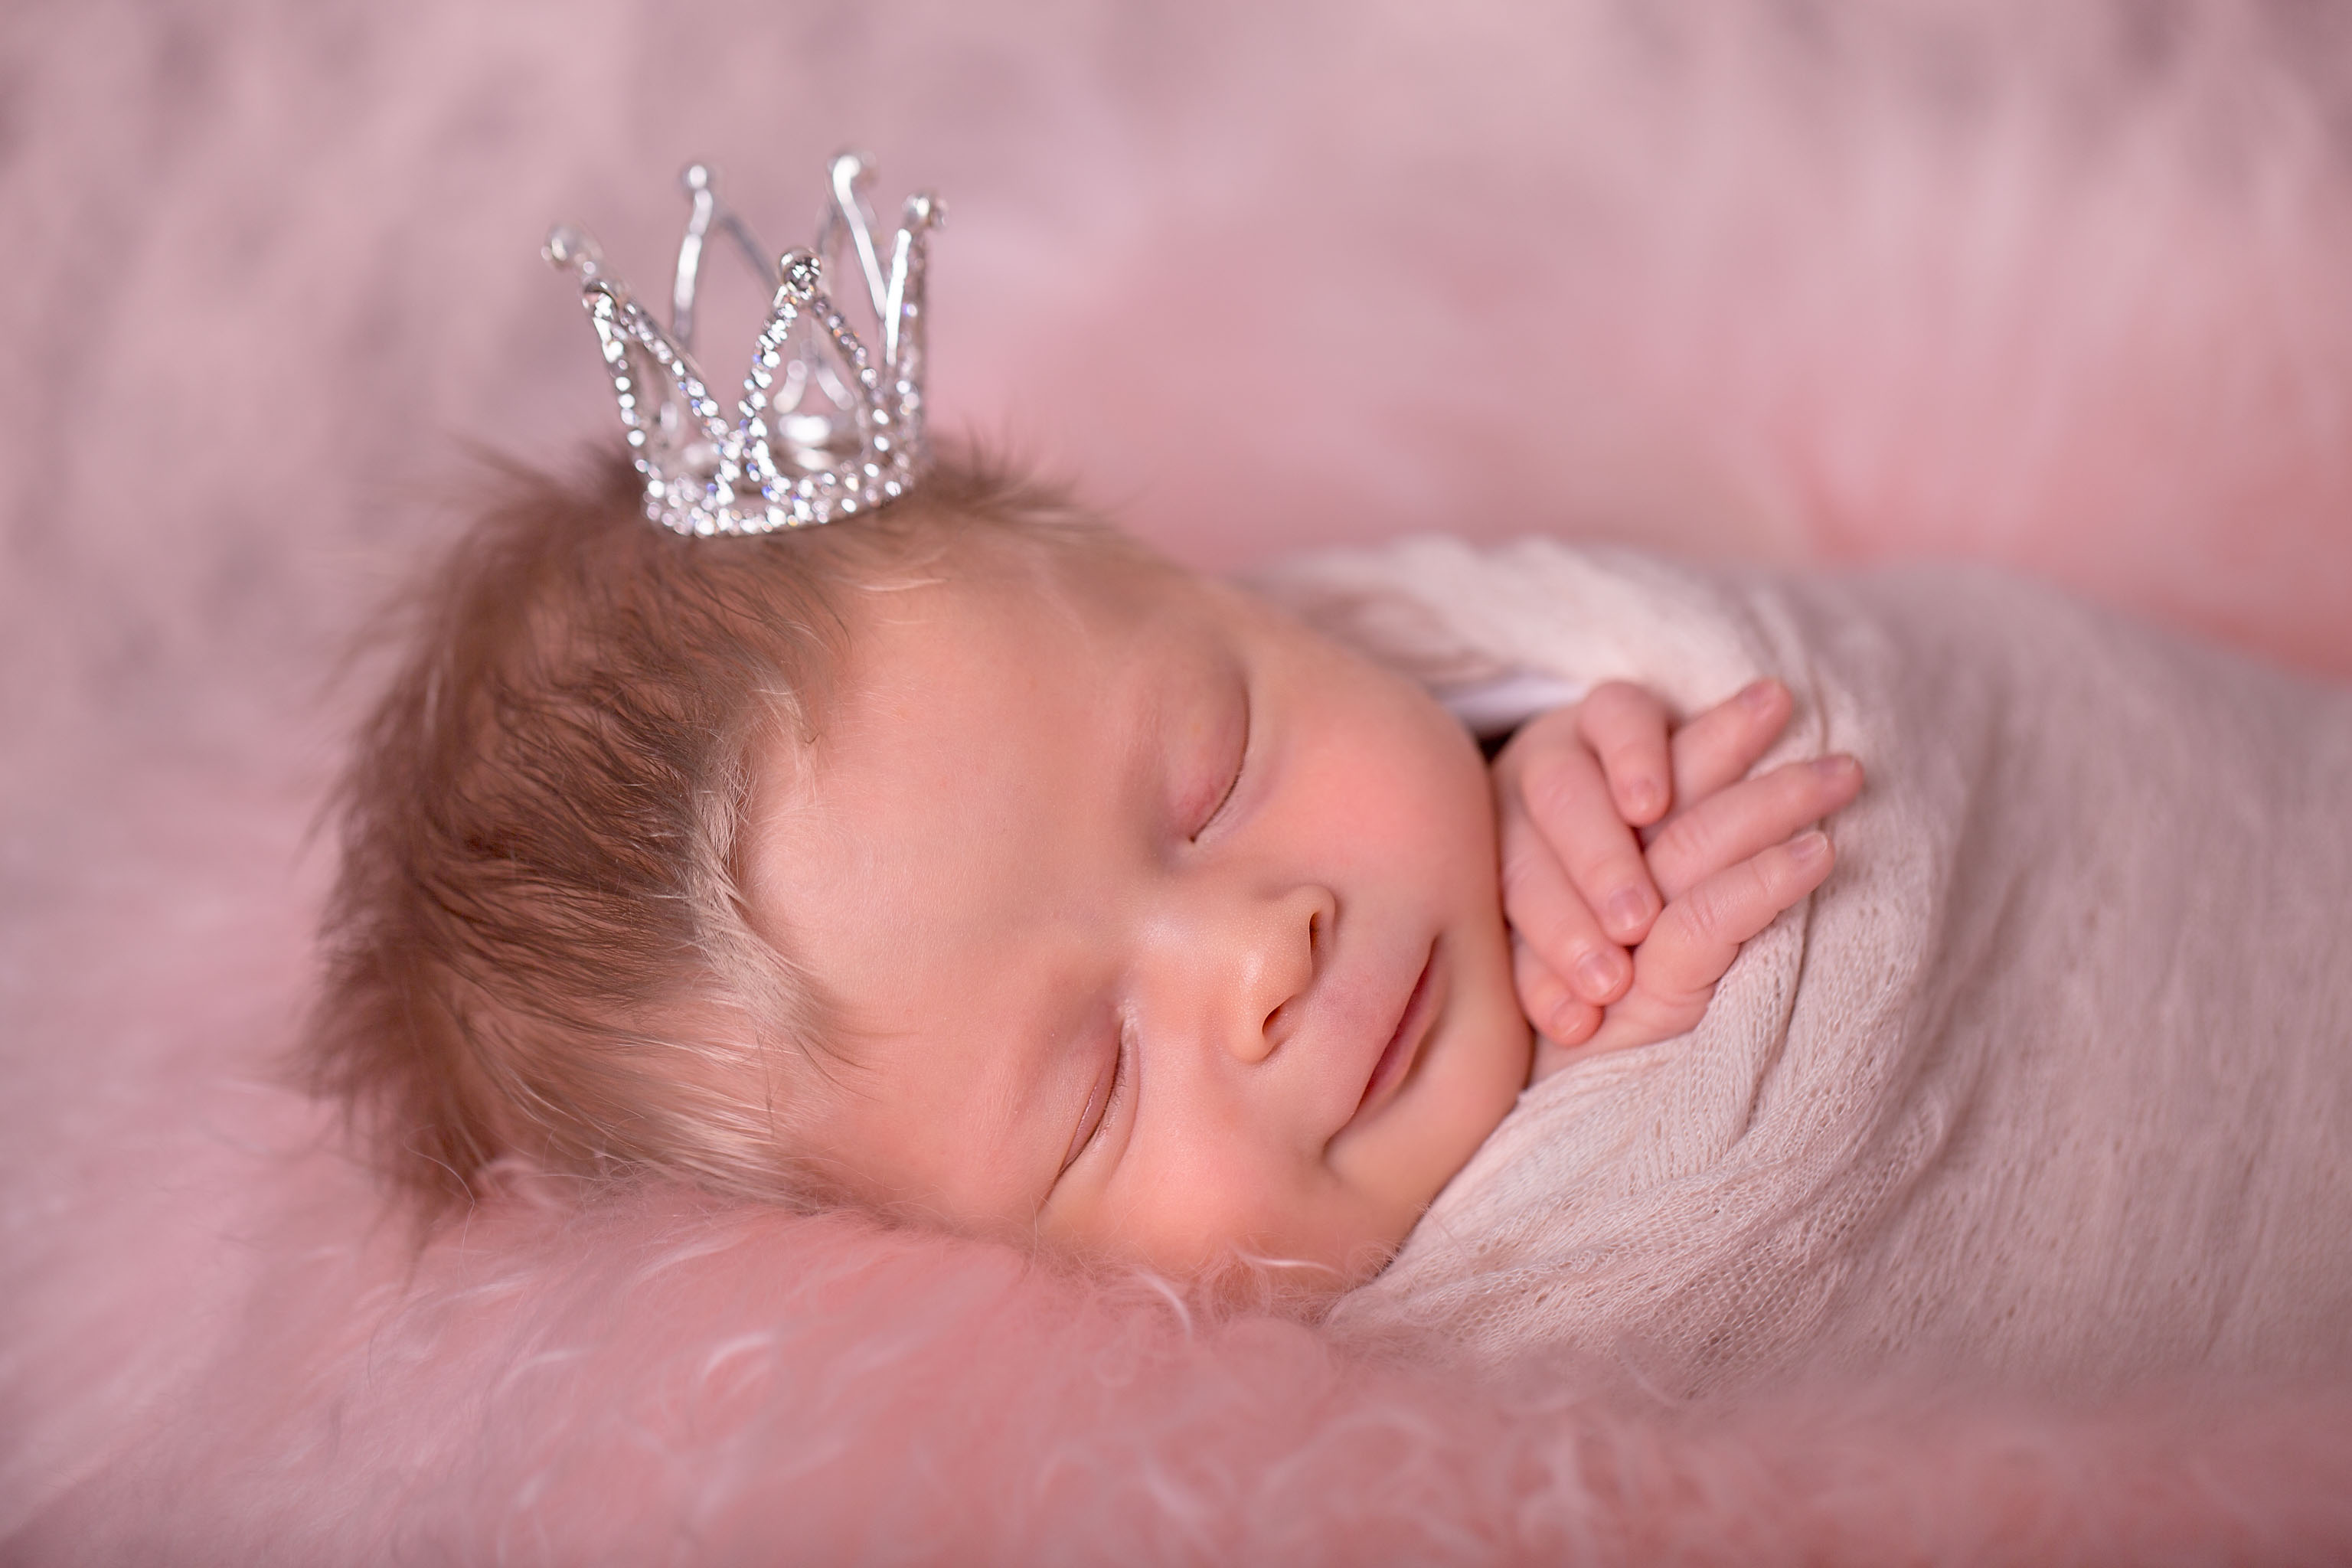 Image of newborn baby girl wearing a little silver crown